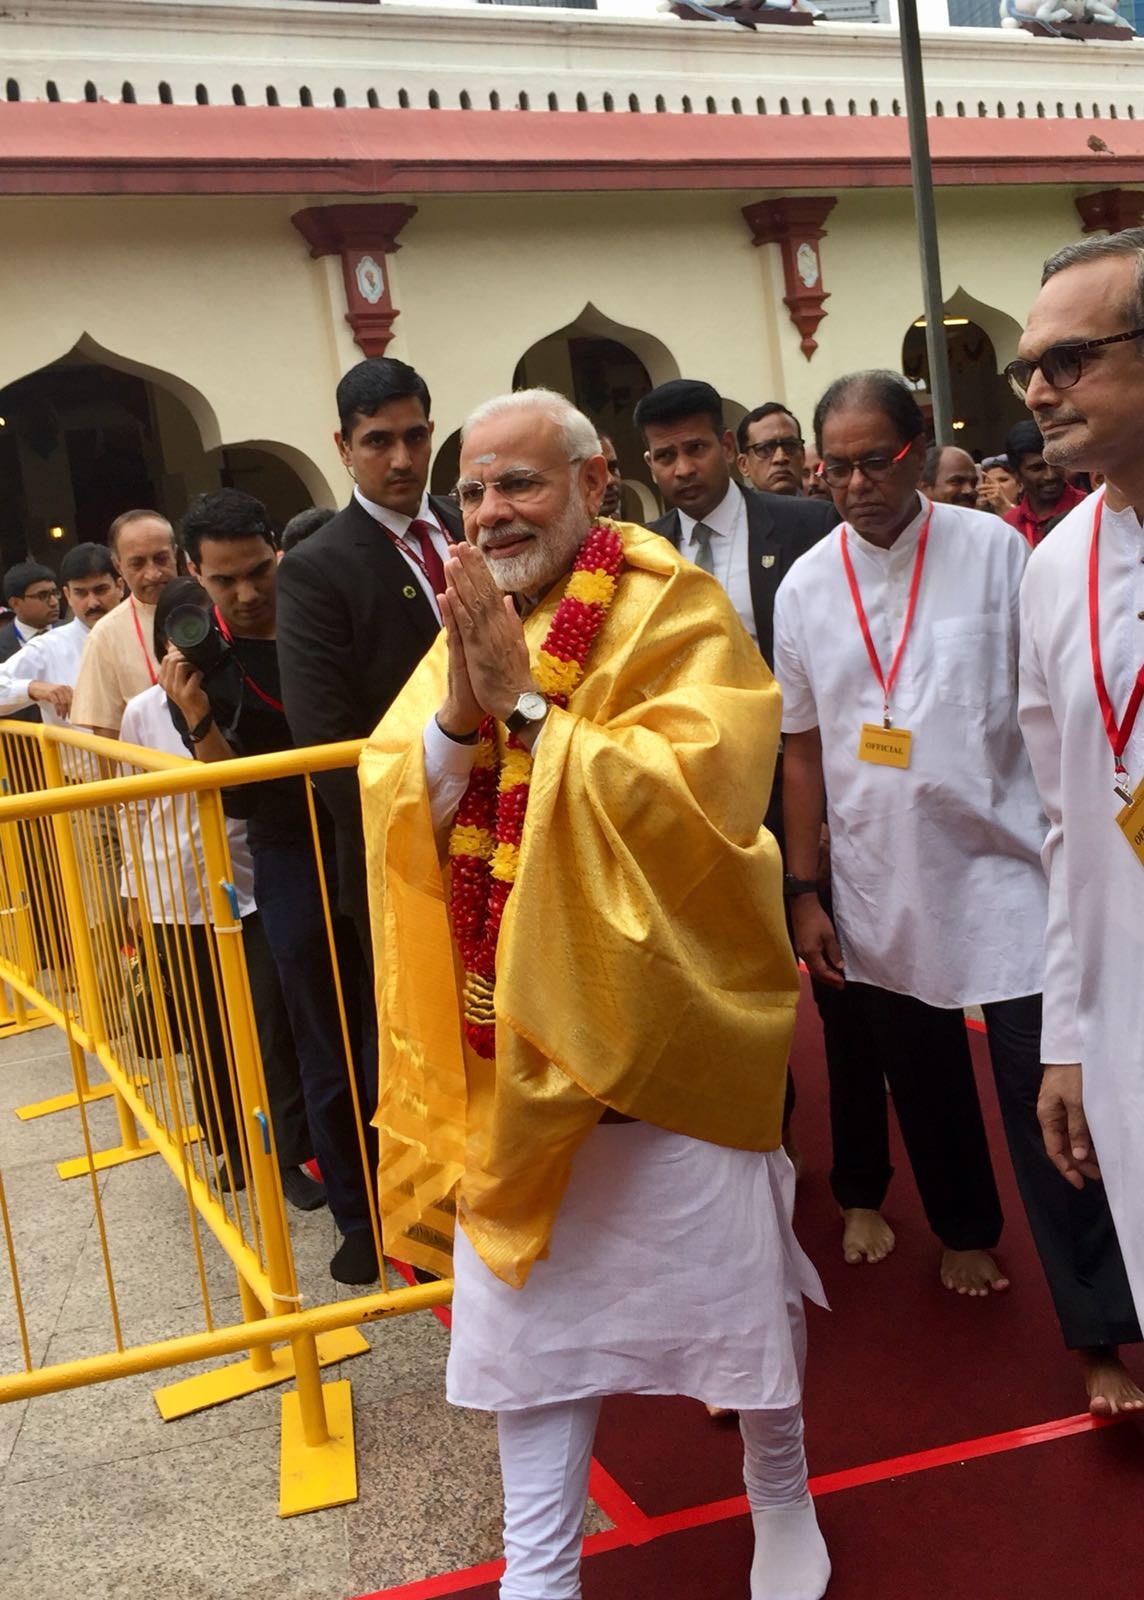 Indian Prime Minister Narendra Modi strengthened cultural bonds with Singapore as he visited the Mariamman Temple dedicated to Goddess Mariamman.